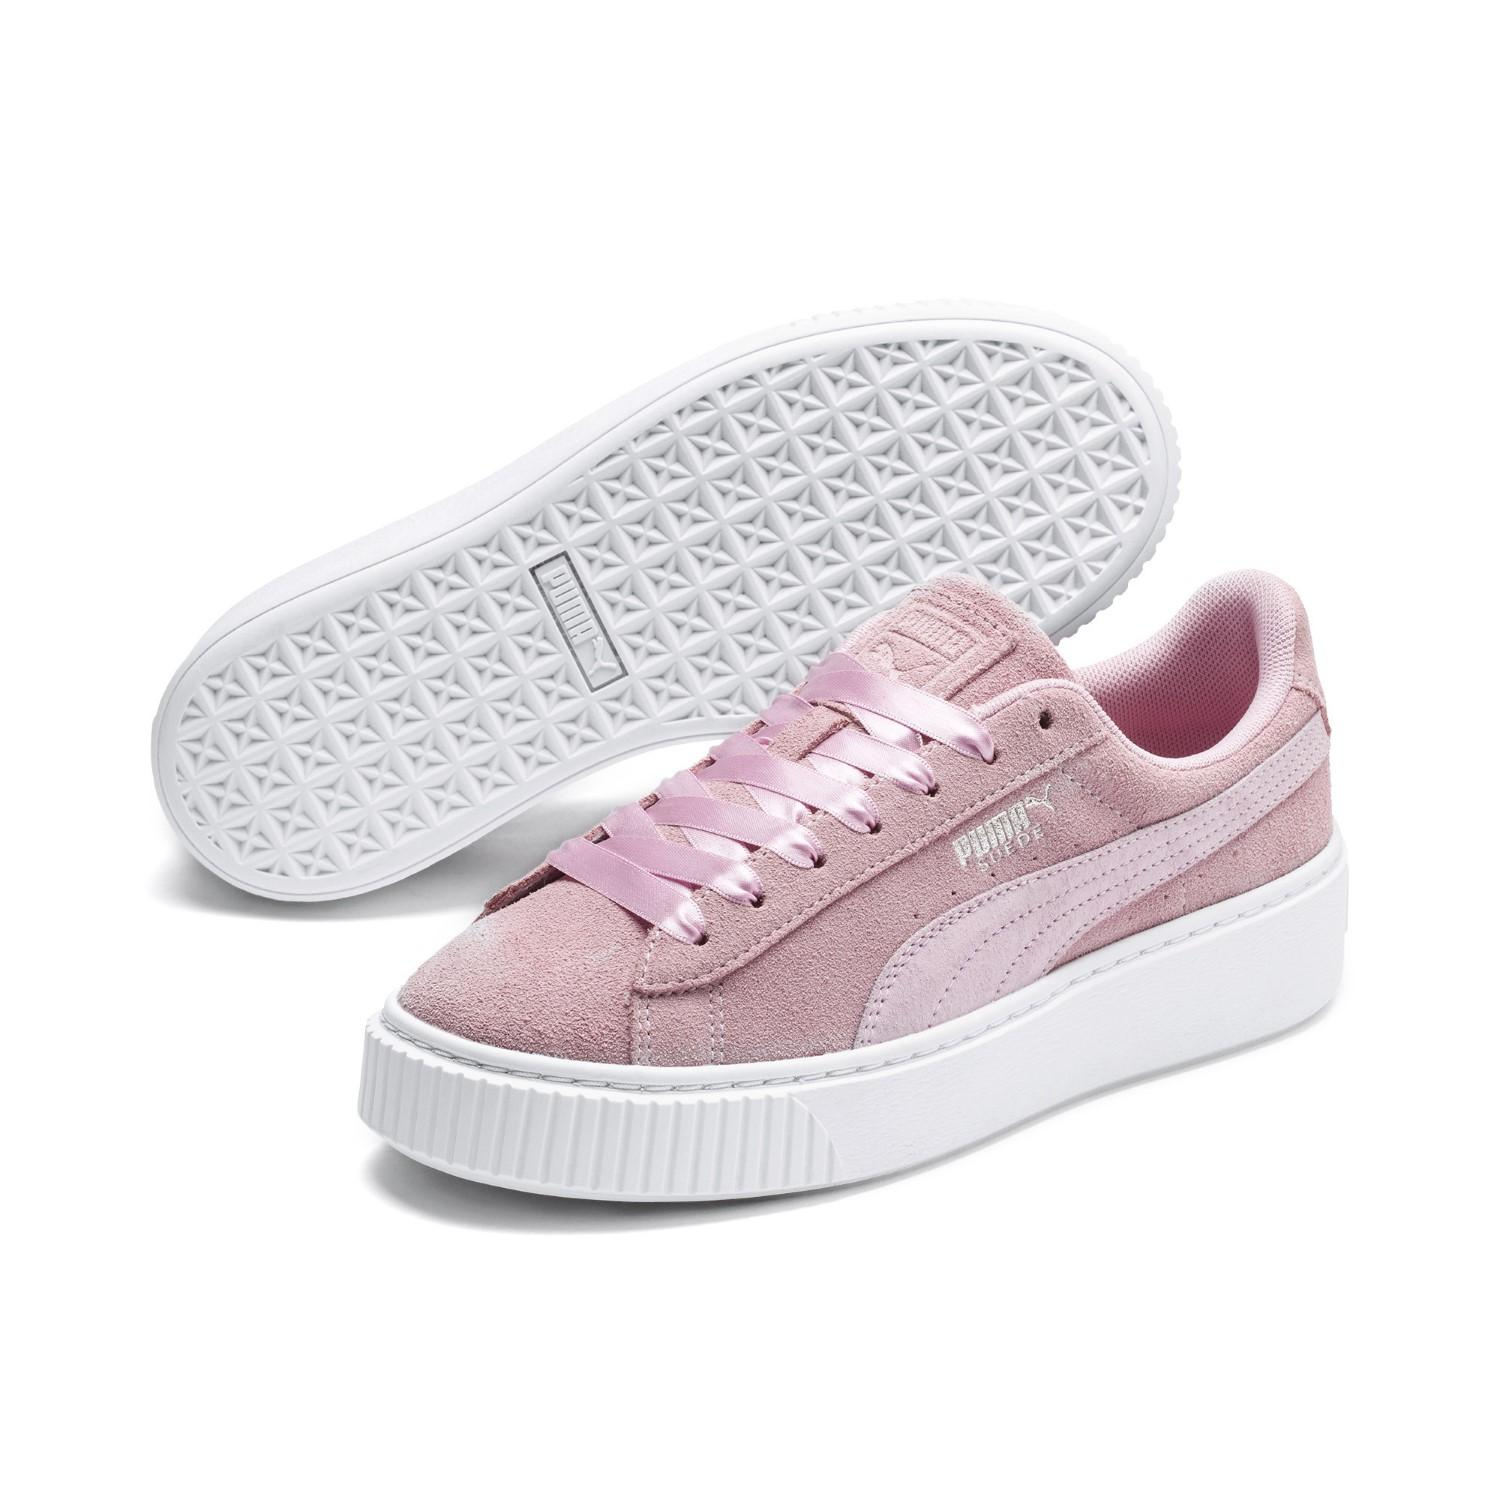 Pink Lyst Sneakers Puma Galaxy In Suede Platform 0wN8mn